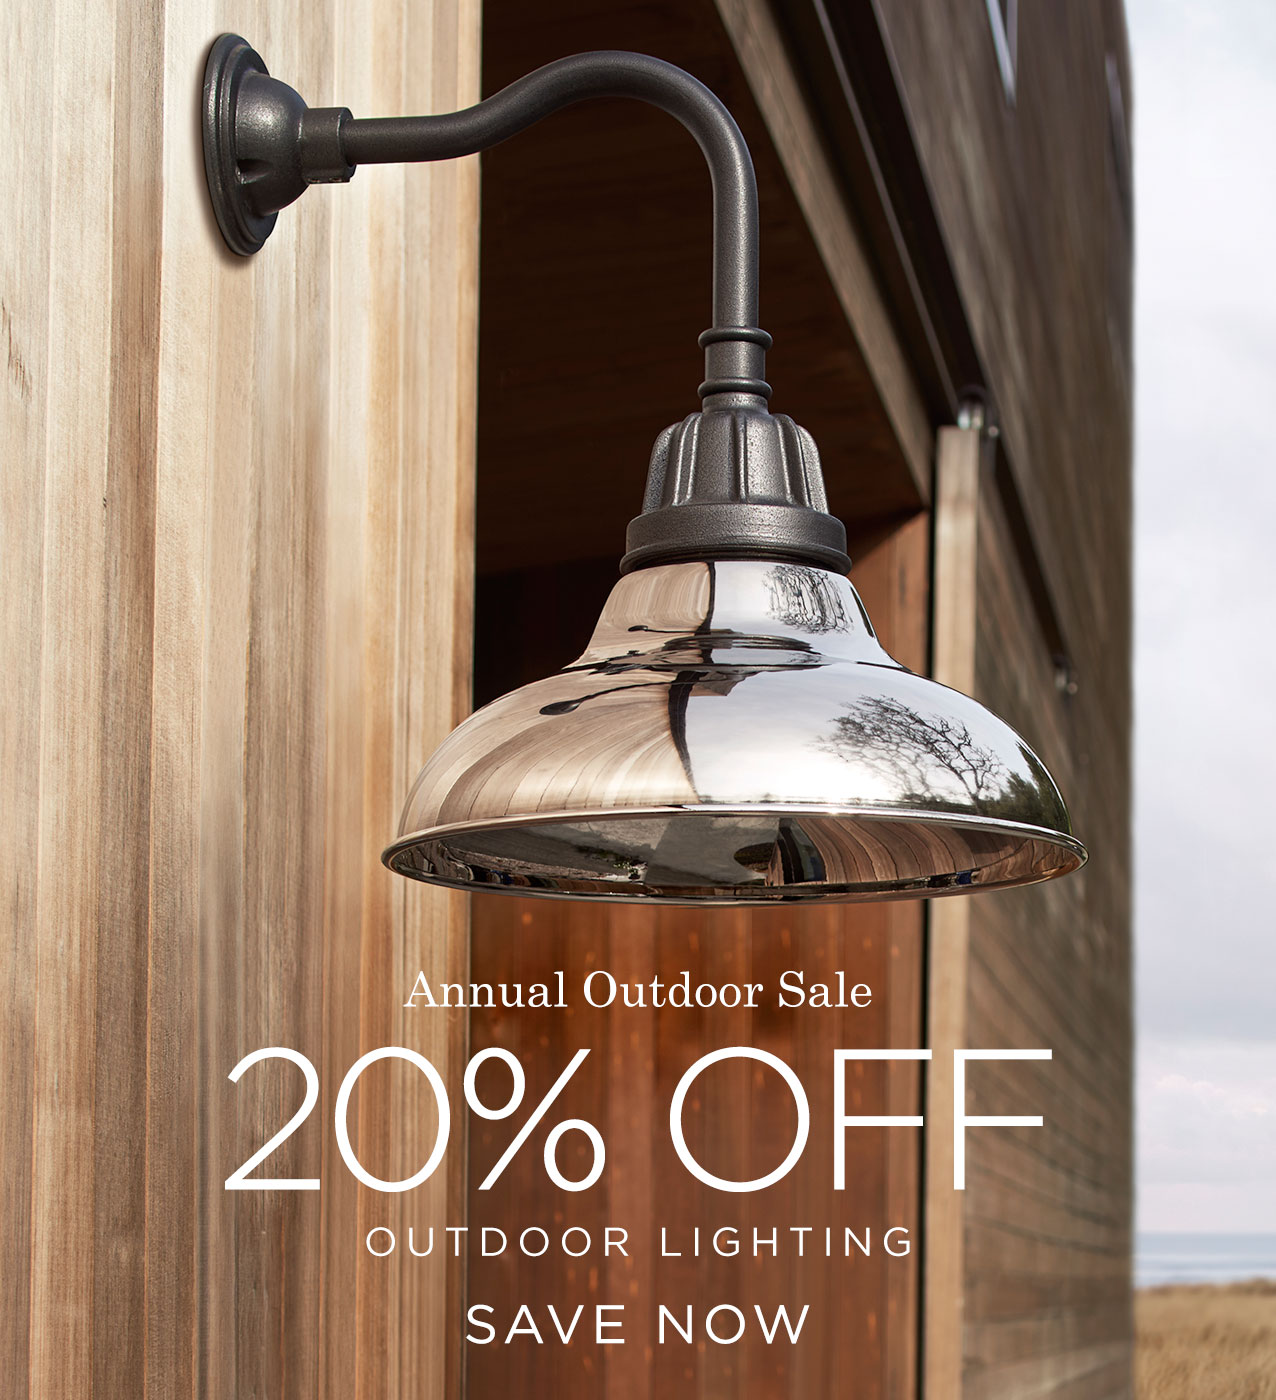 Save 20% on Outdoor Lighting